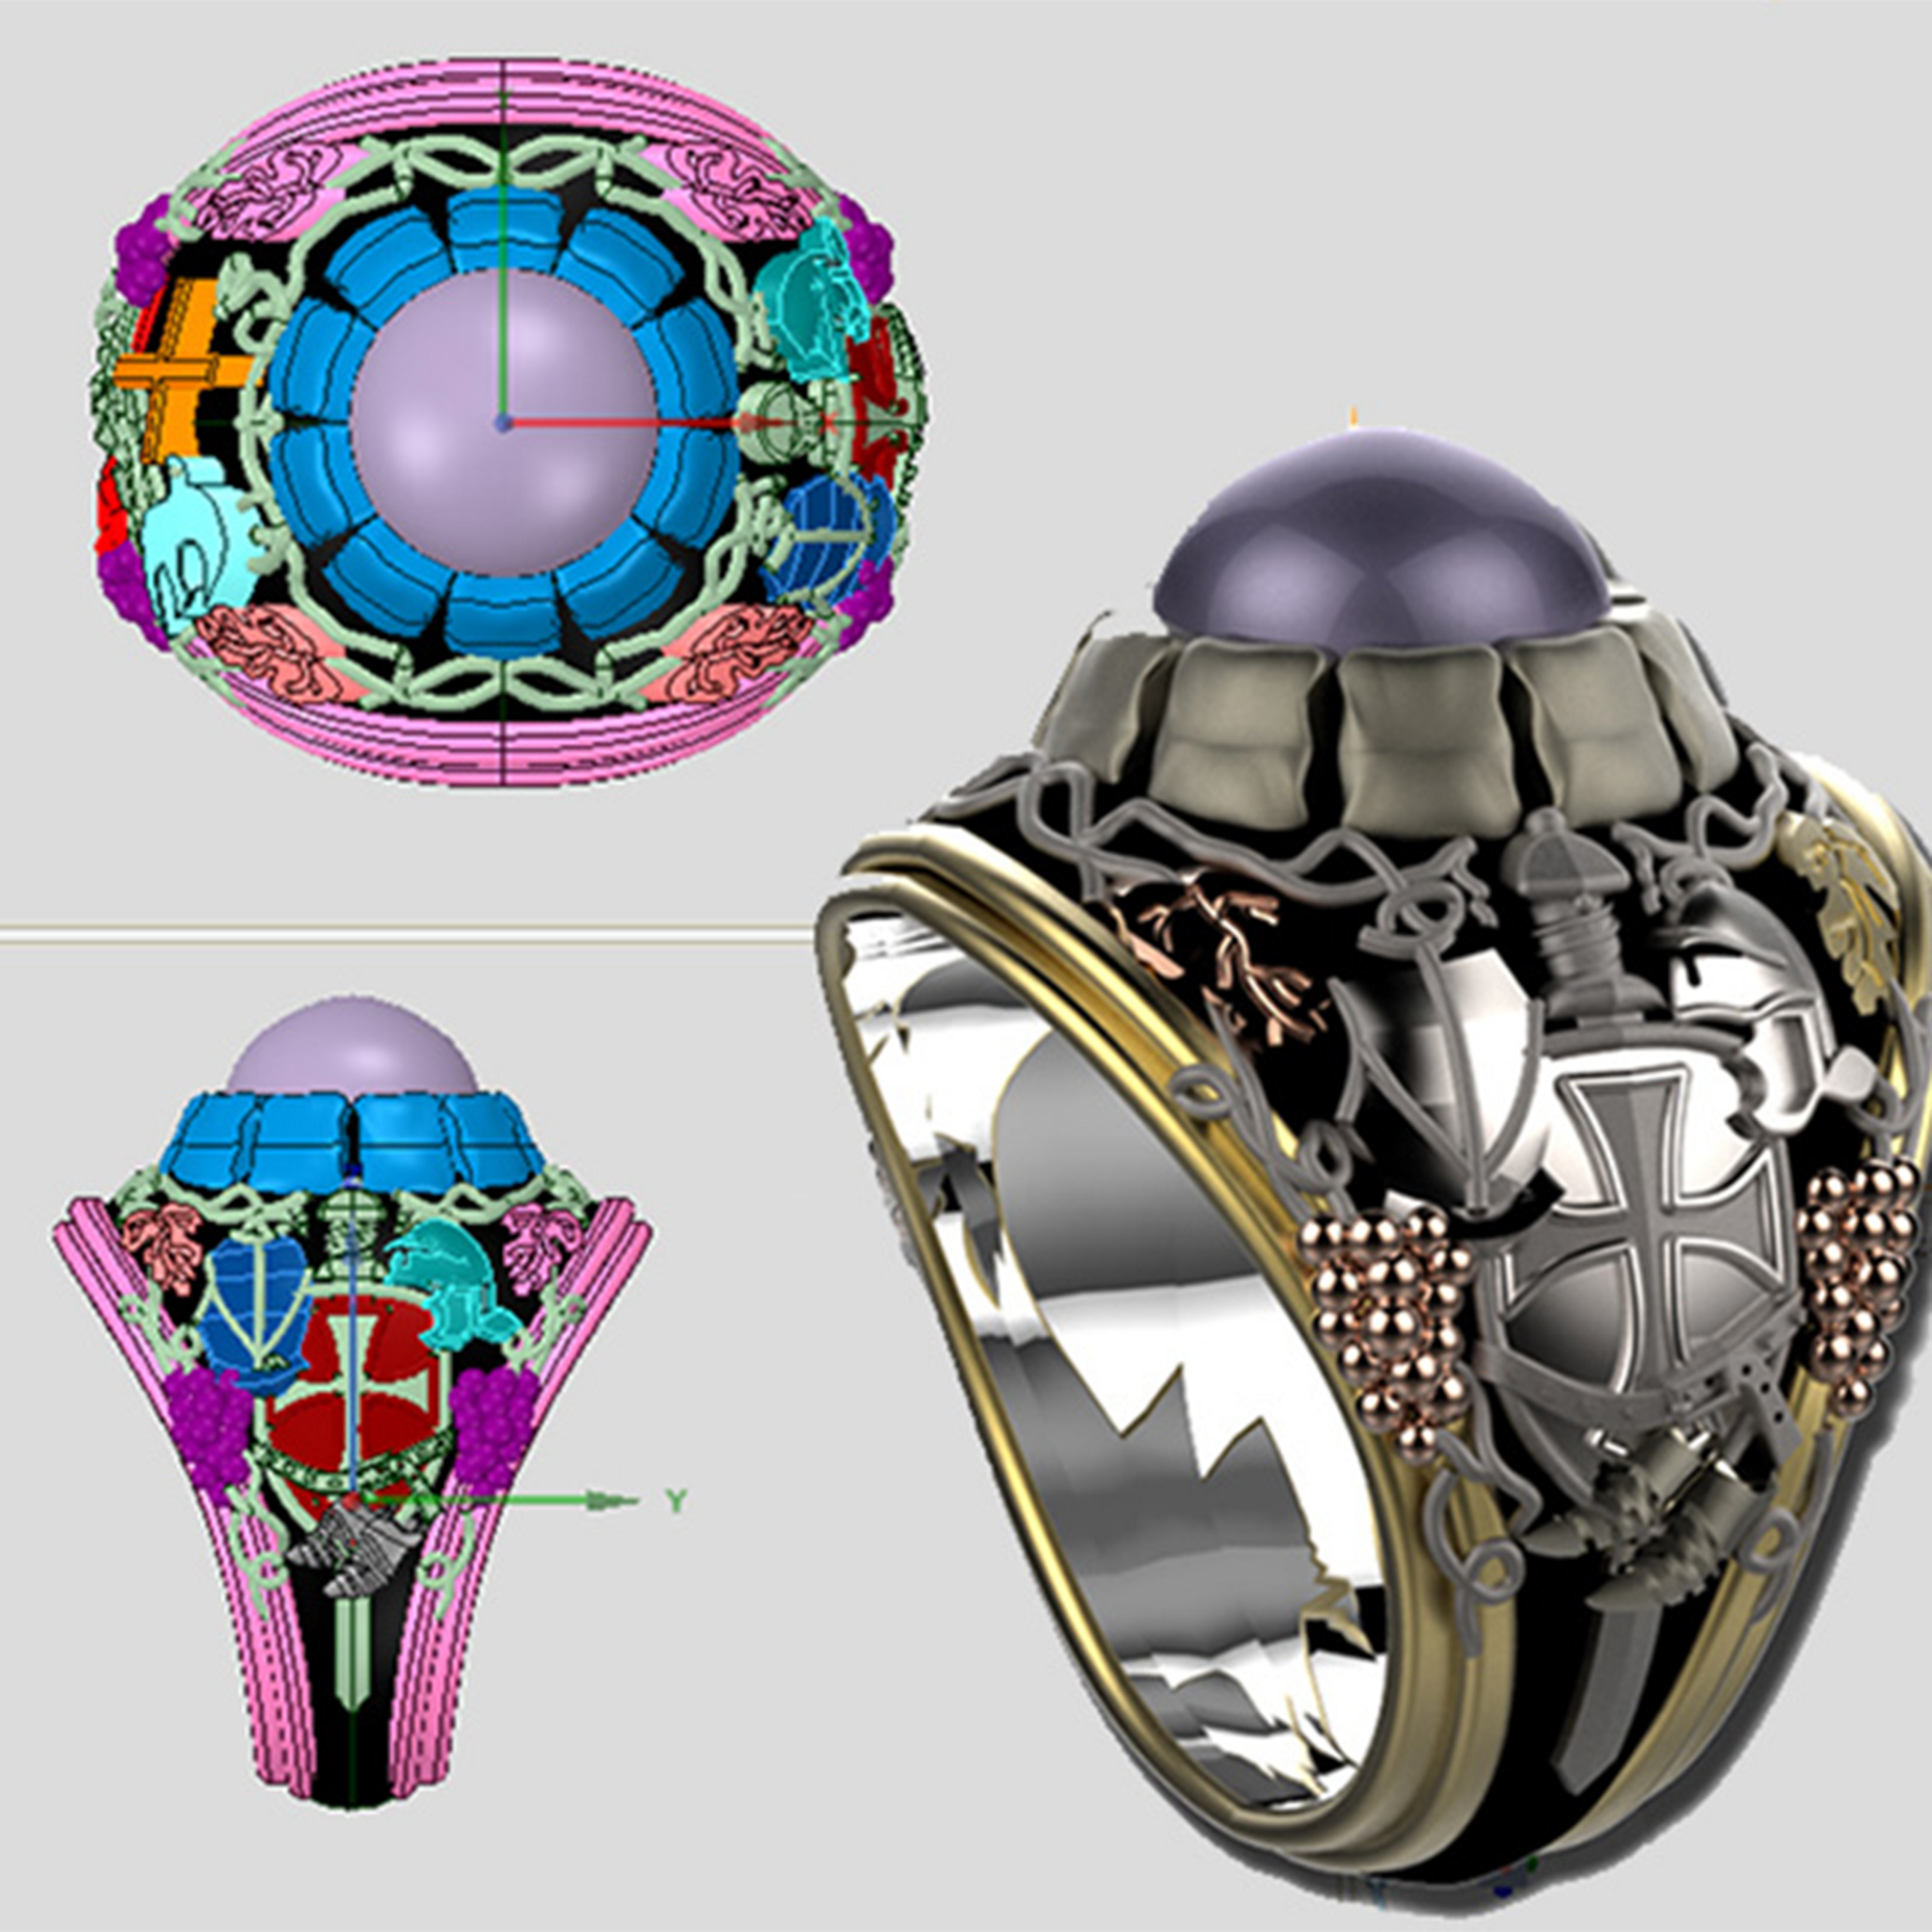 CAD views (left) and final render (right) of a ring